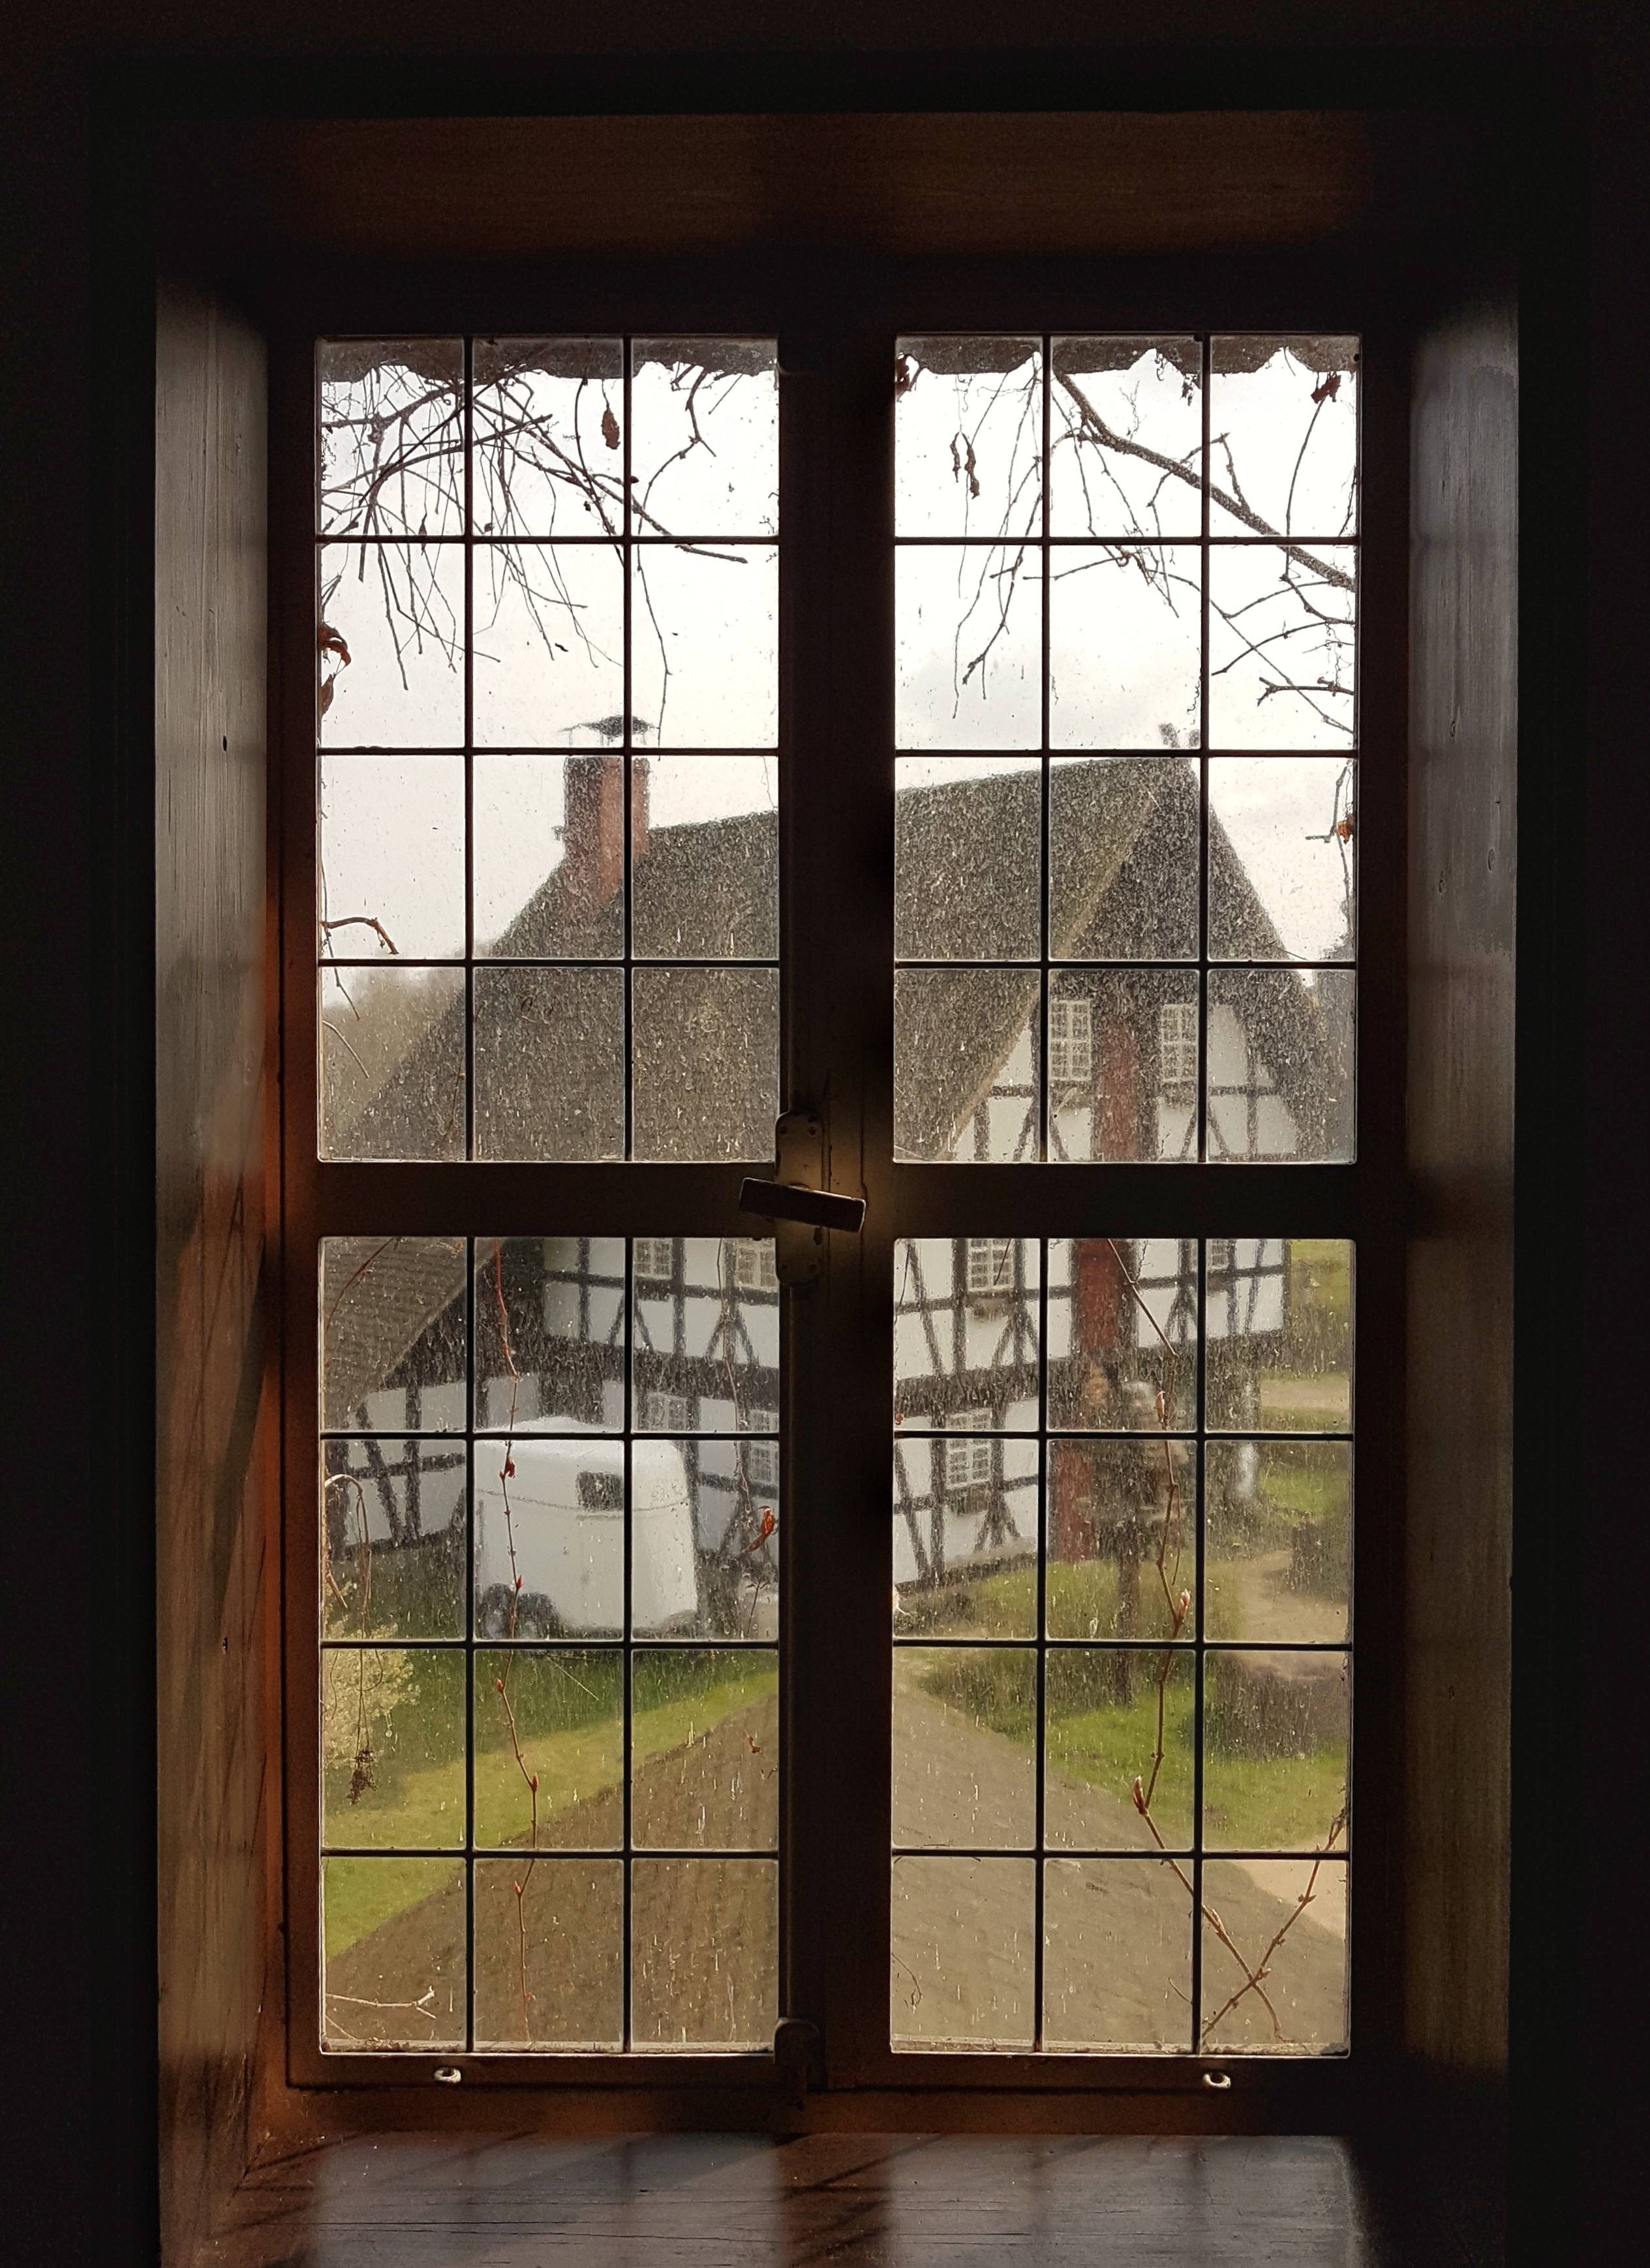 House with a wooden frame and thatched roof seen through a window of a different house